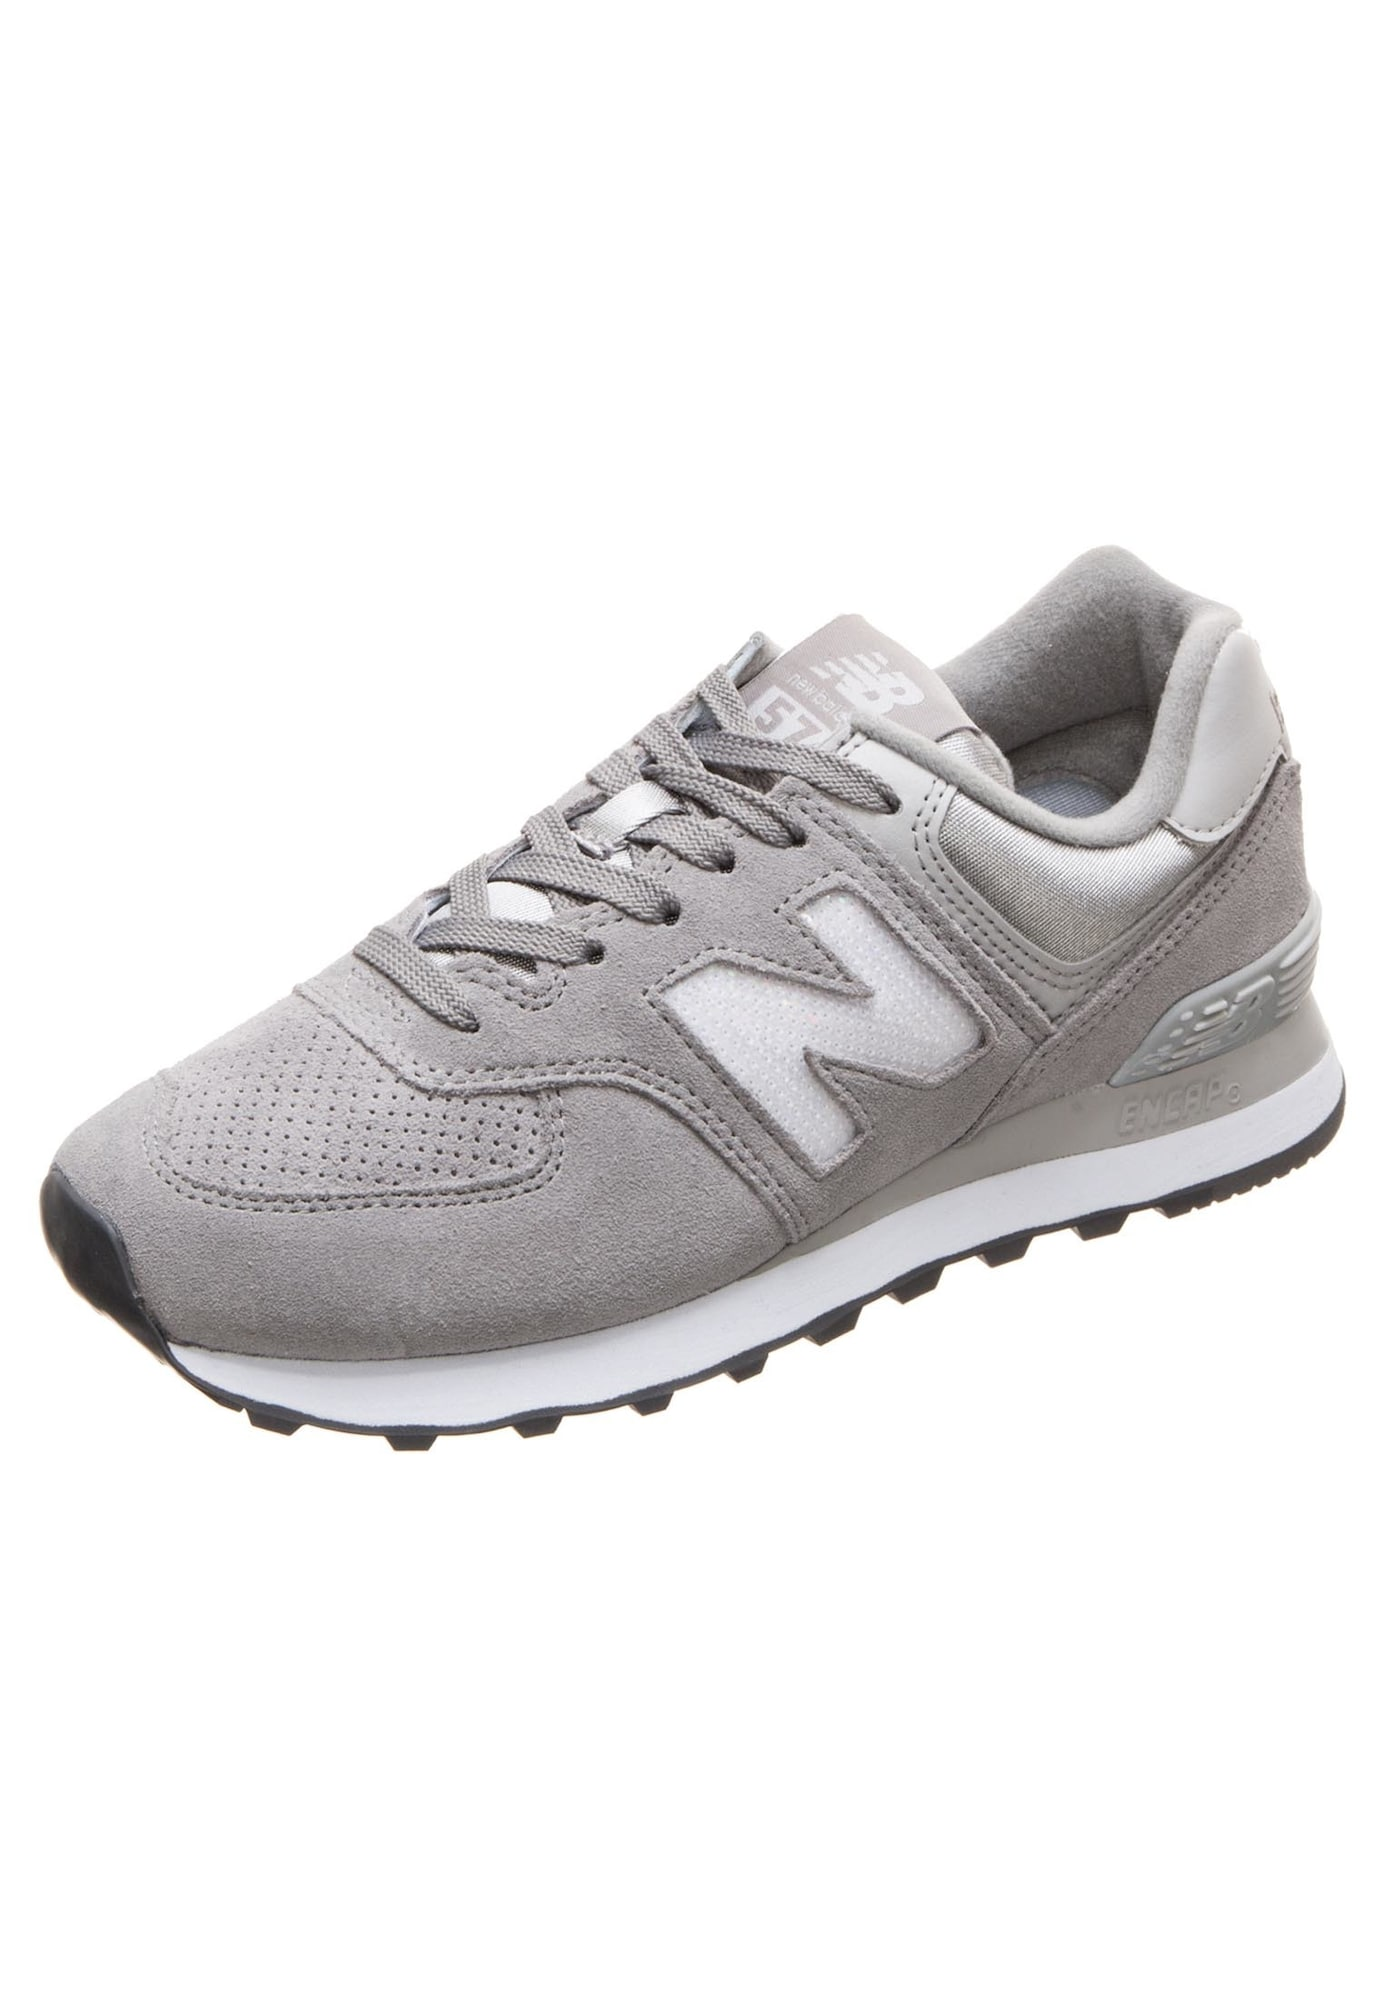 New Balance, Dames Sneakers laag 'WL574-FHC-B', grijs / wit